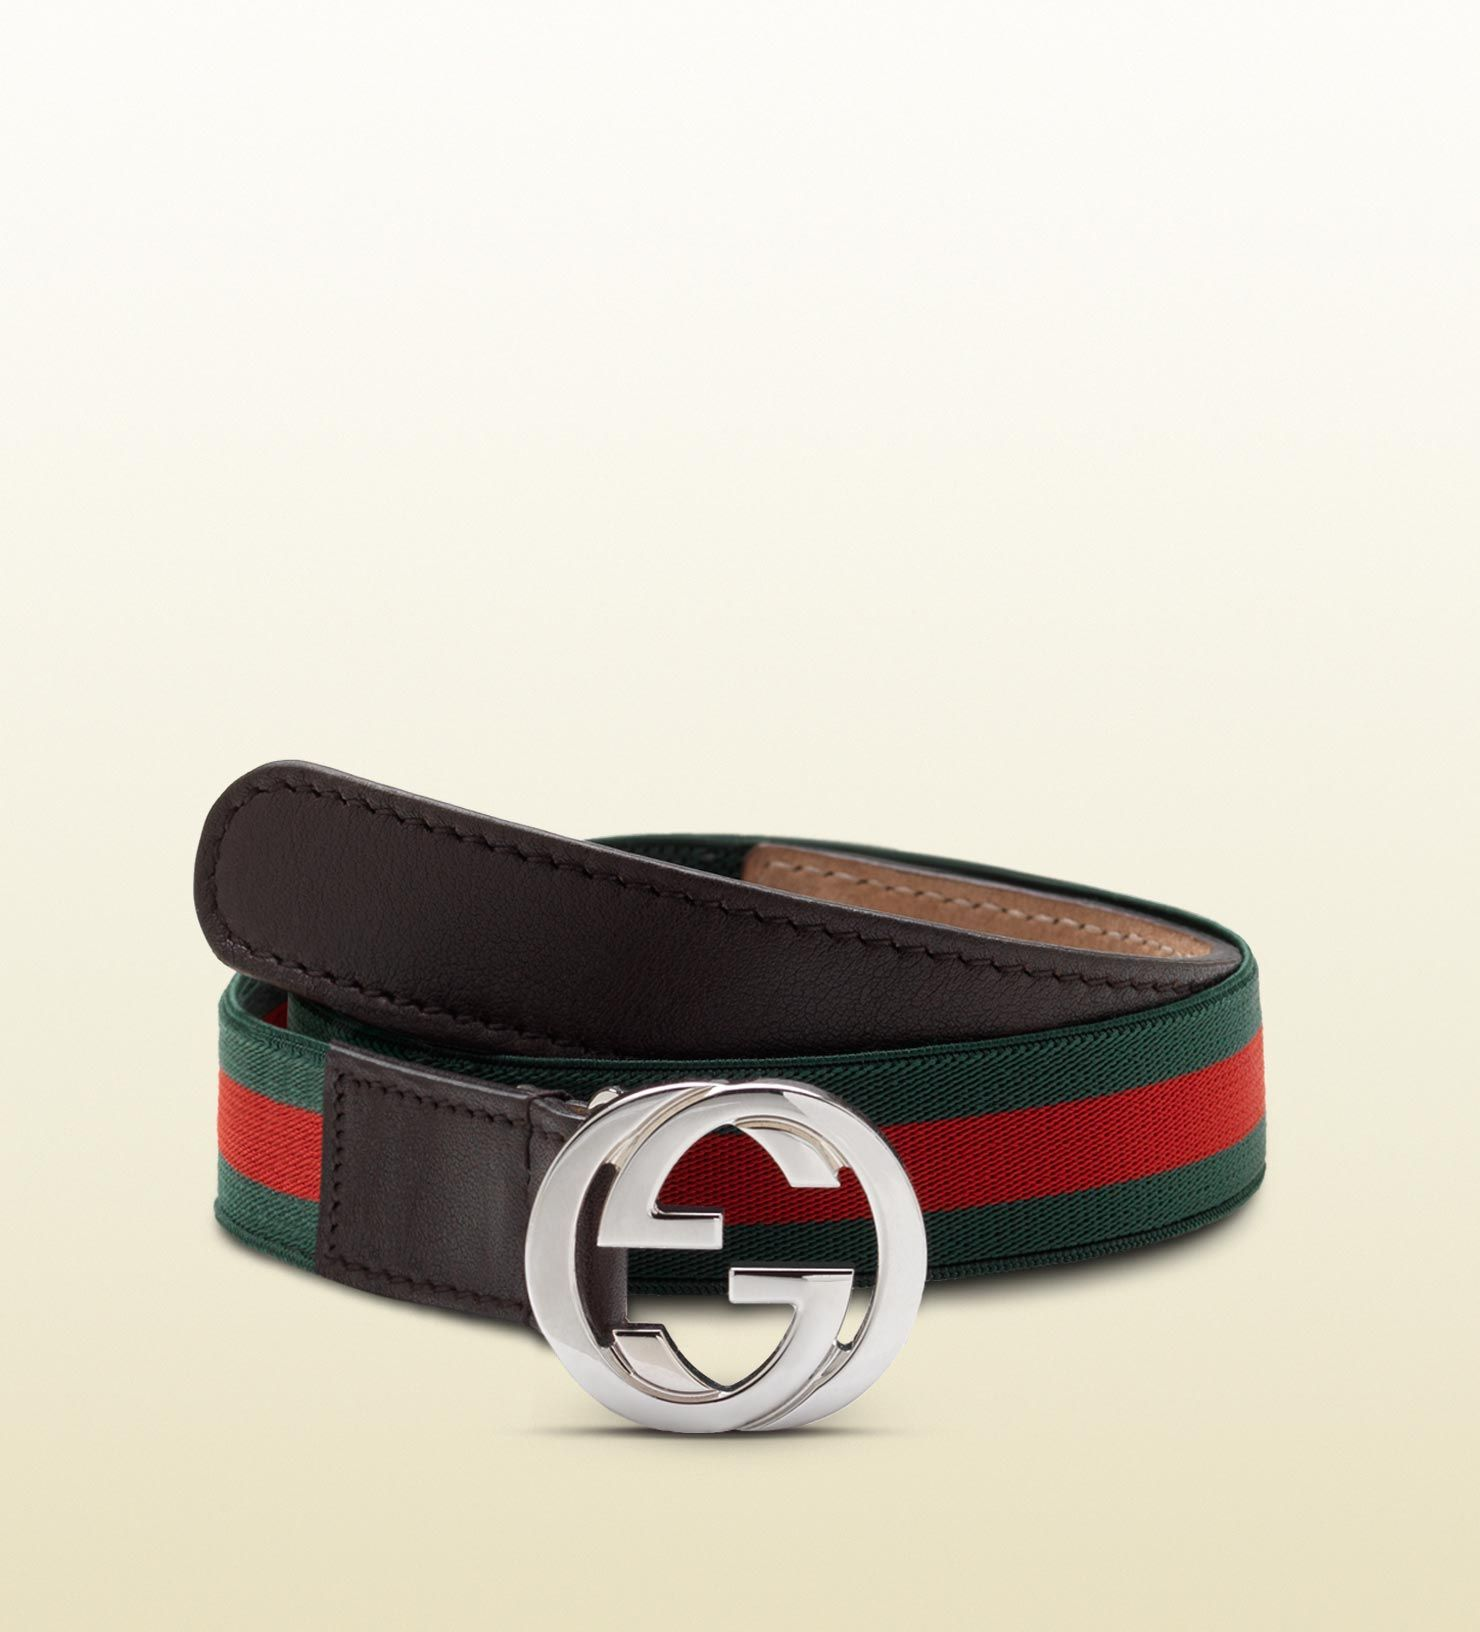 kids Belts Gucci Children's Web belt | Kids belt, Gucci kids, Gucci